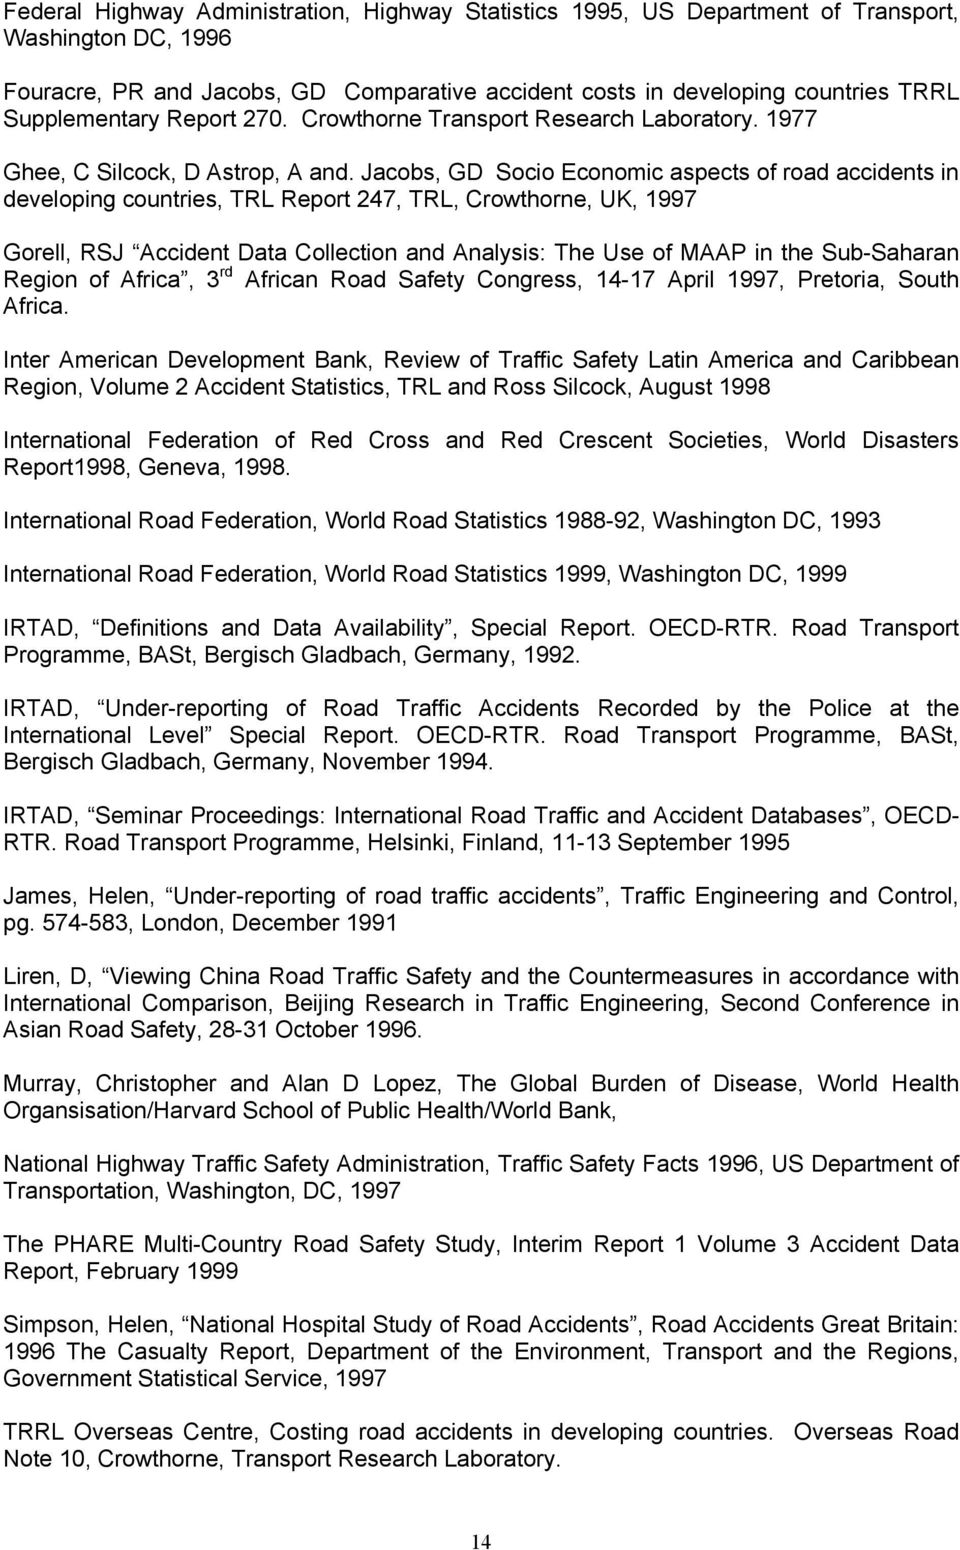 A REVIEW OF GLOBAL ROAD ACCIDENT FATALITIES  By G D Jacobs